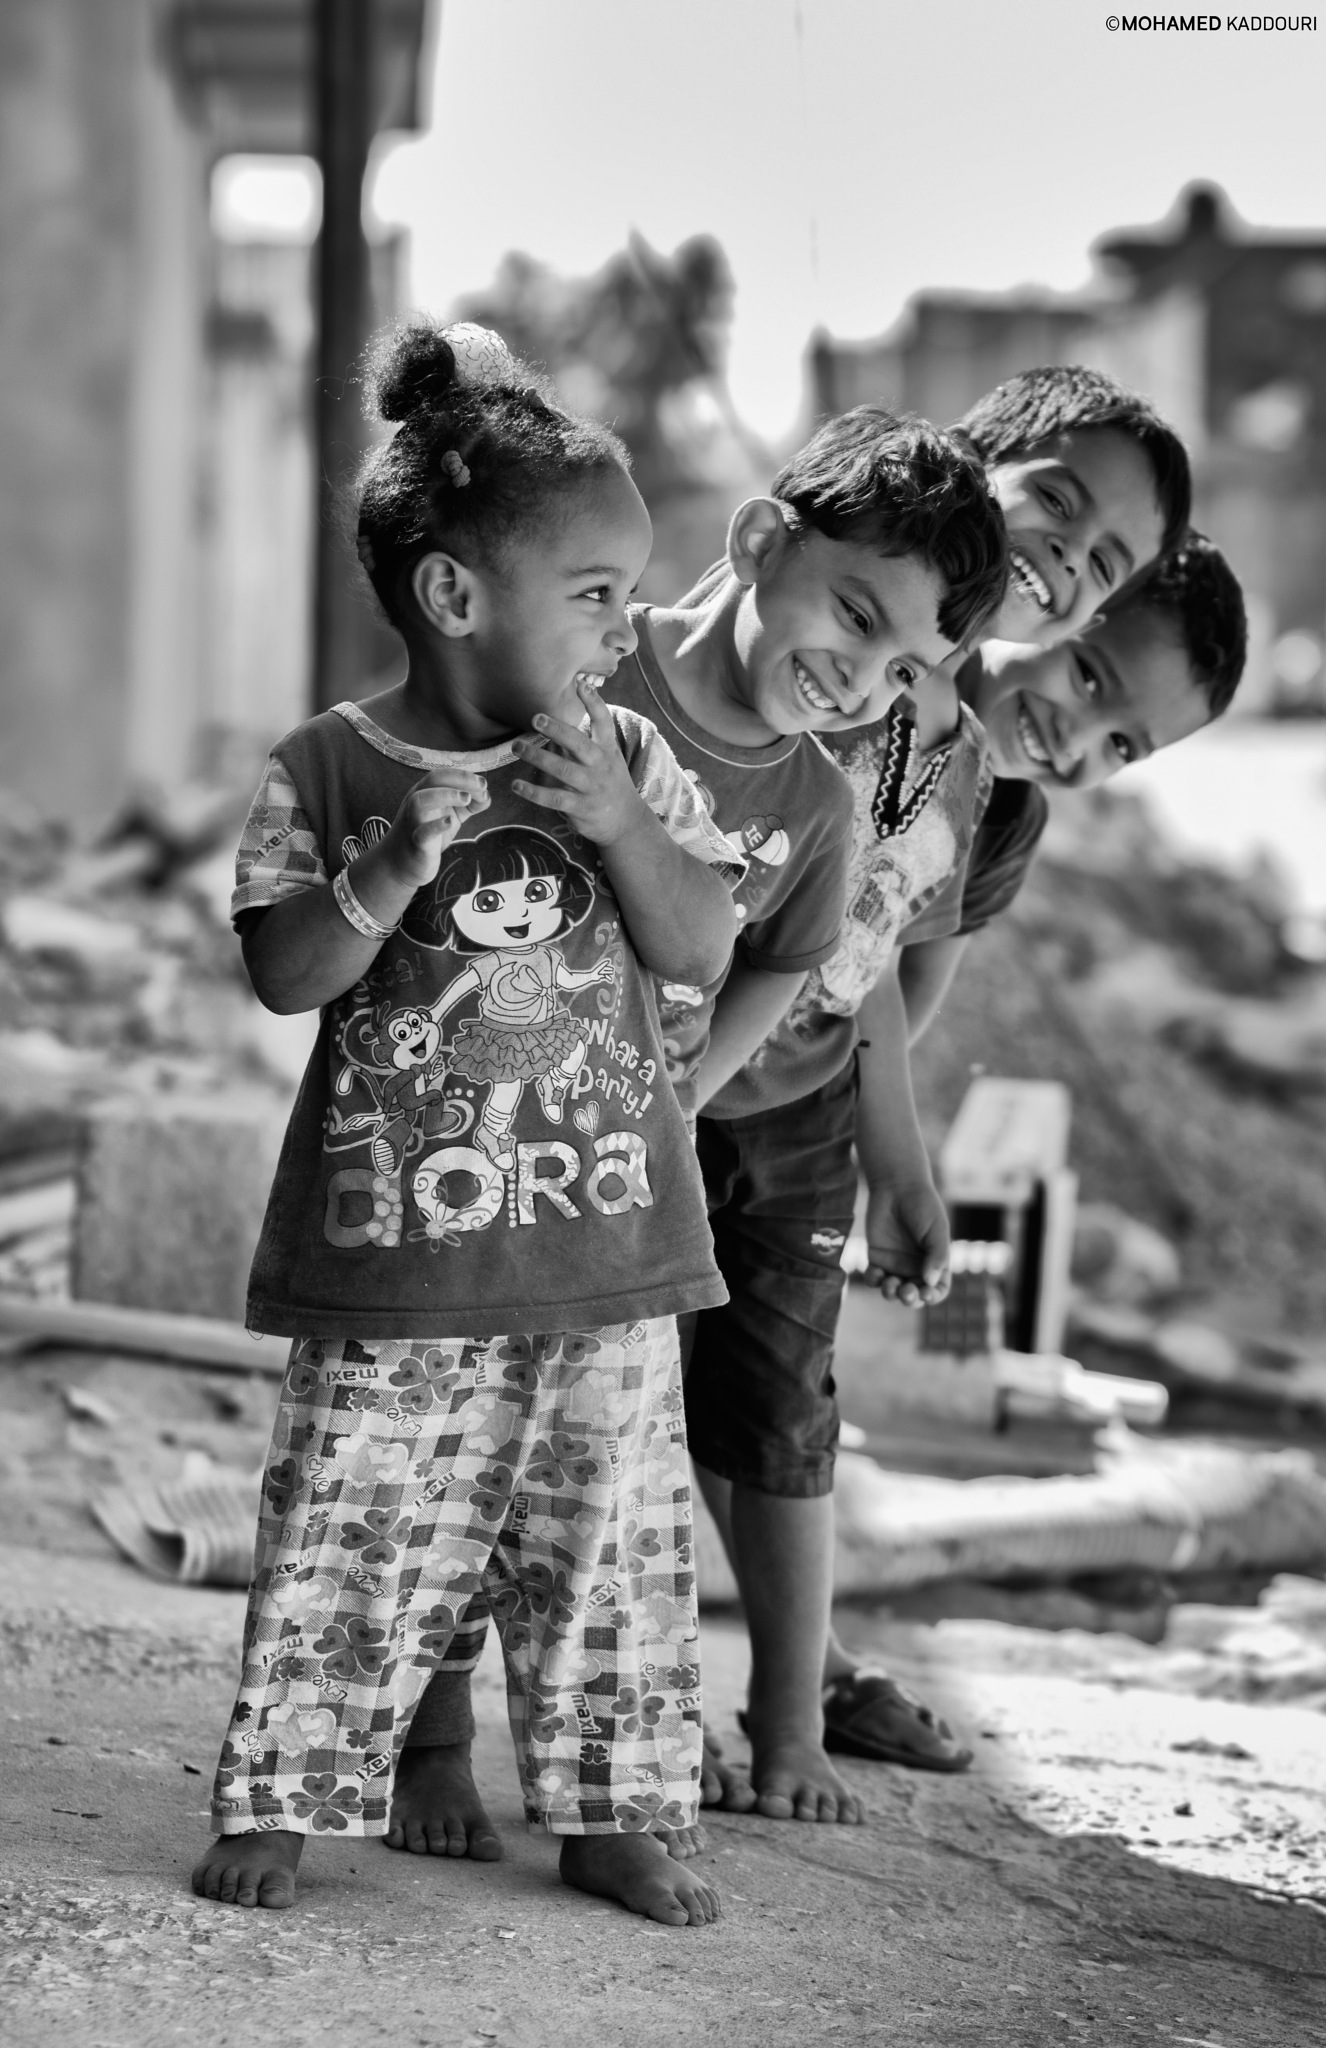 beautiful childhood with innocent smiles by Mohamed Kaddouri